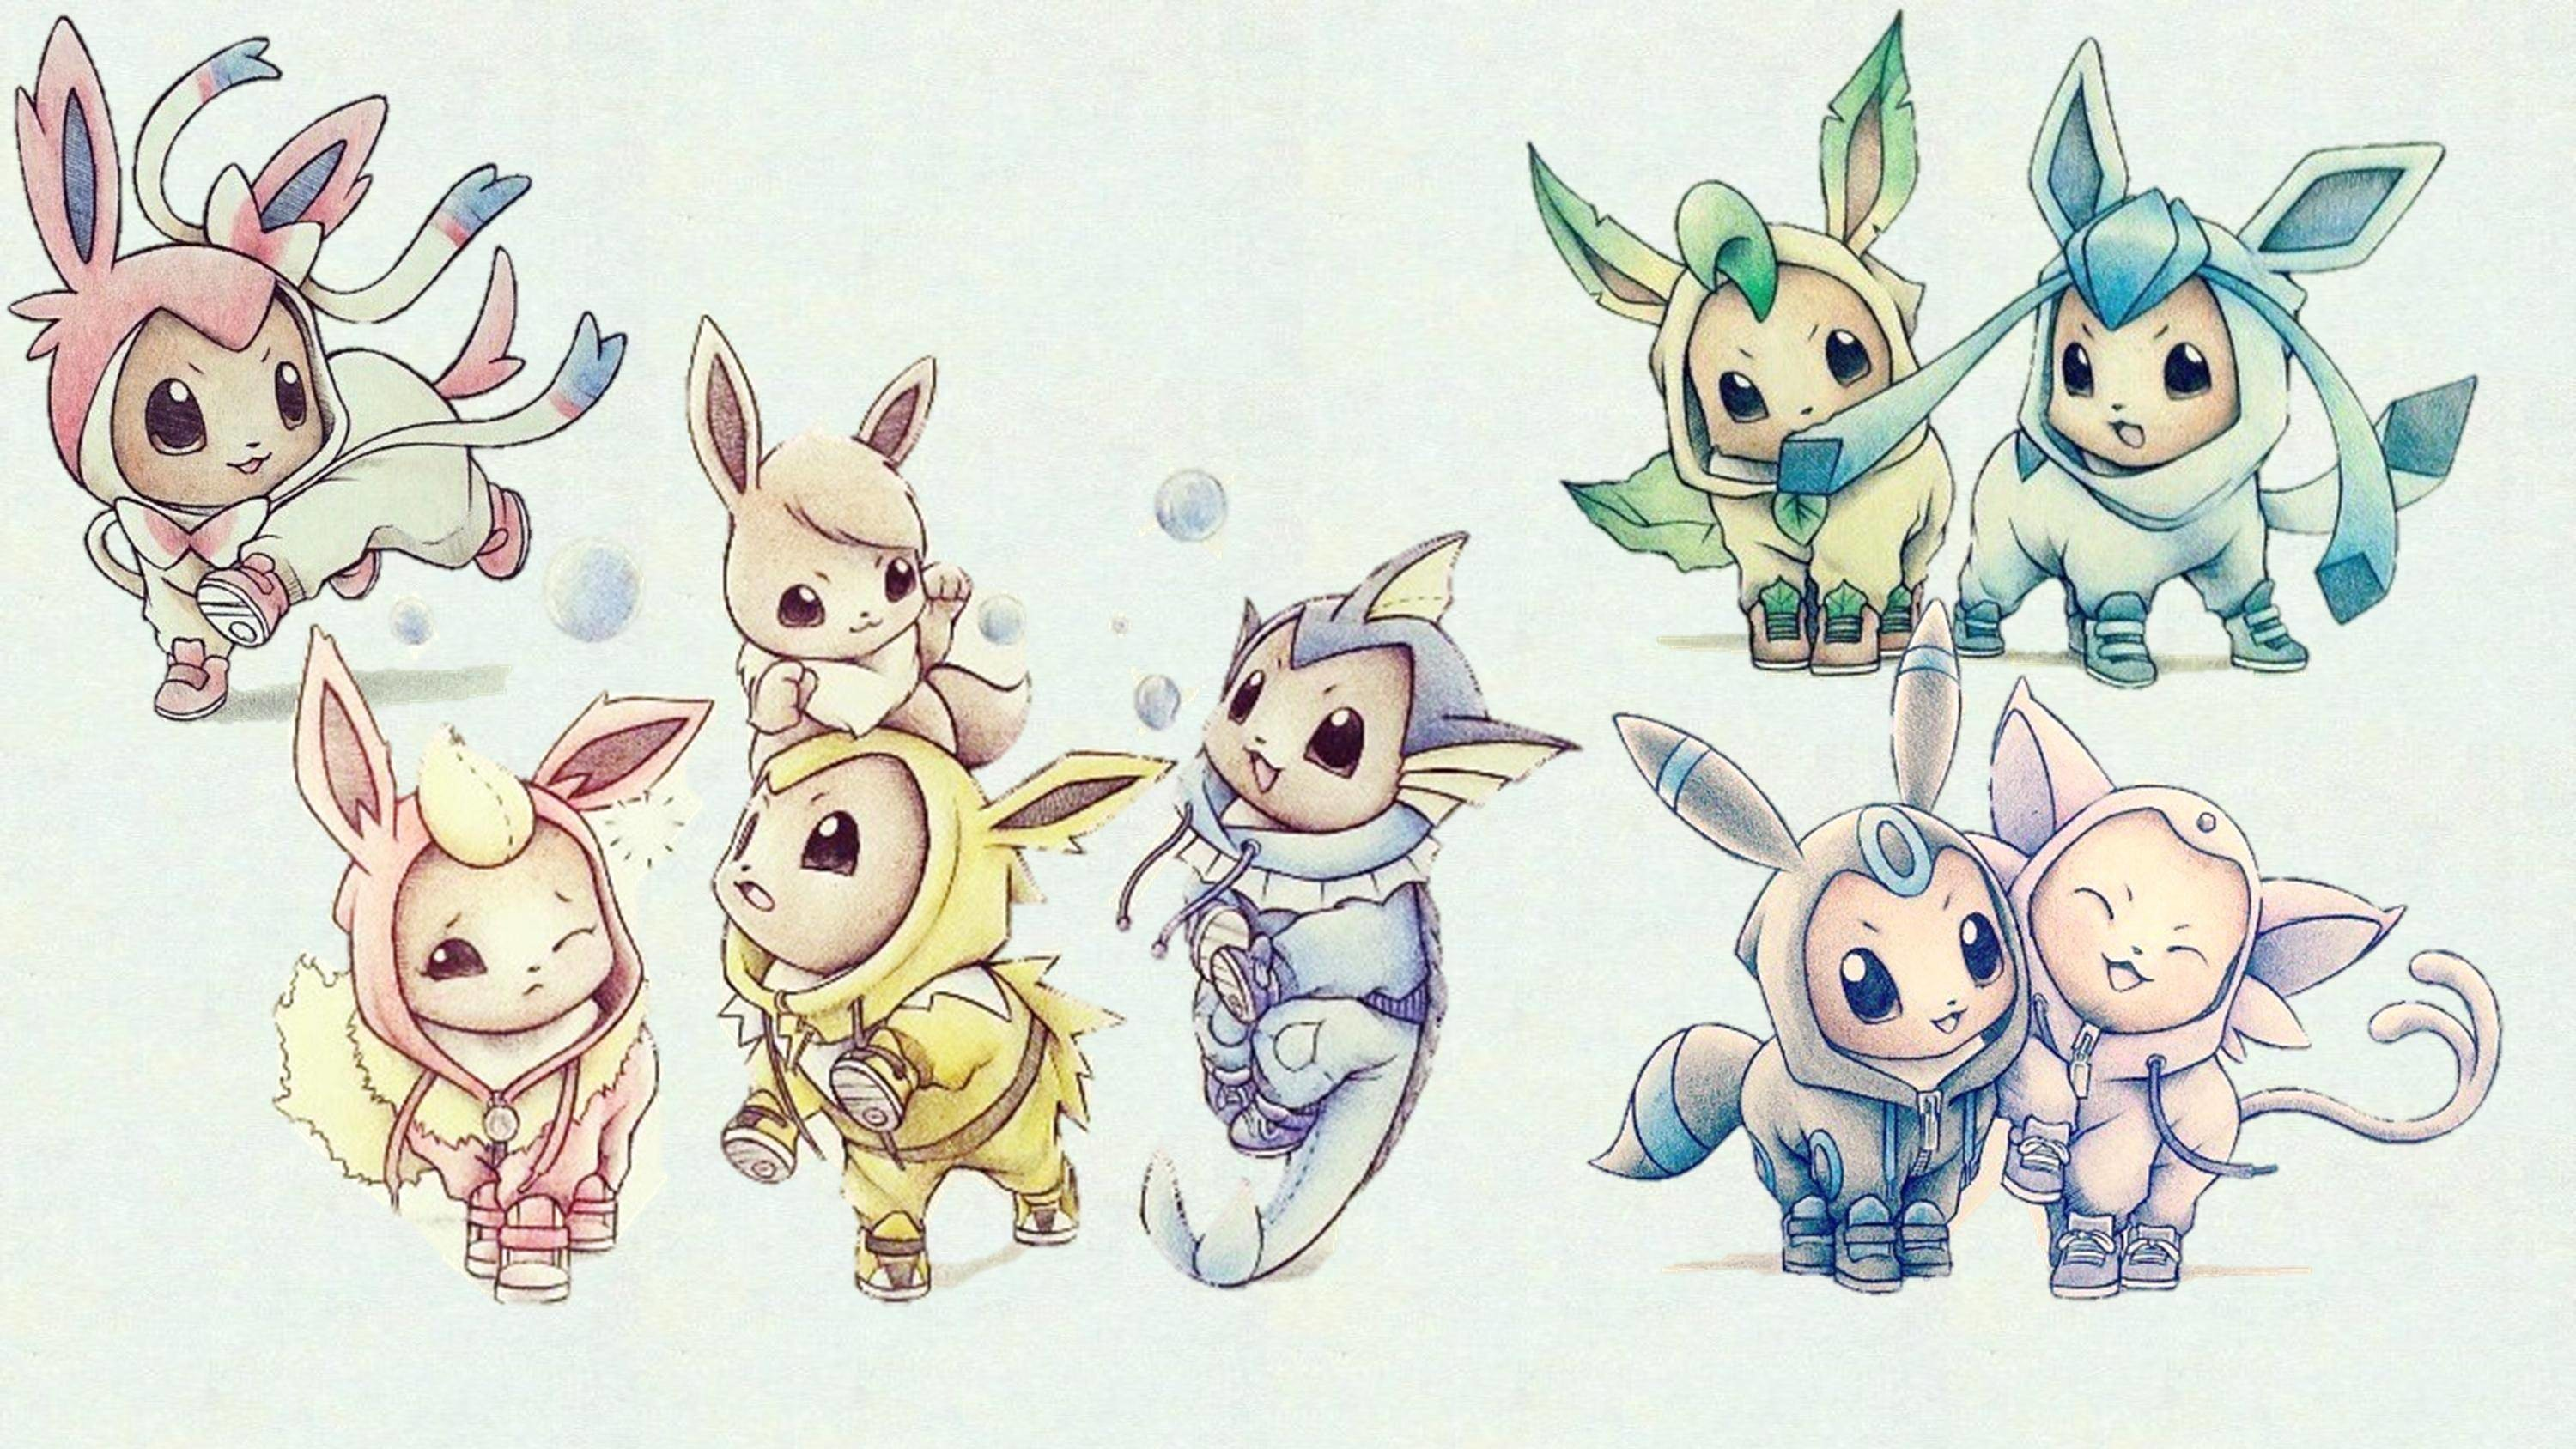 3000x1688 1000+ images about Gaming on Pinterest | Pokemon eevee, Cosplay pokemon and  Deer